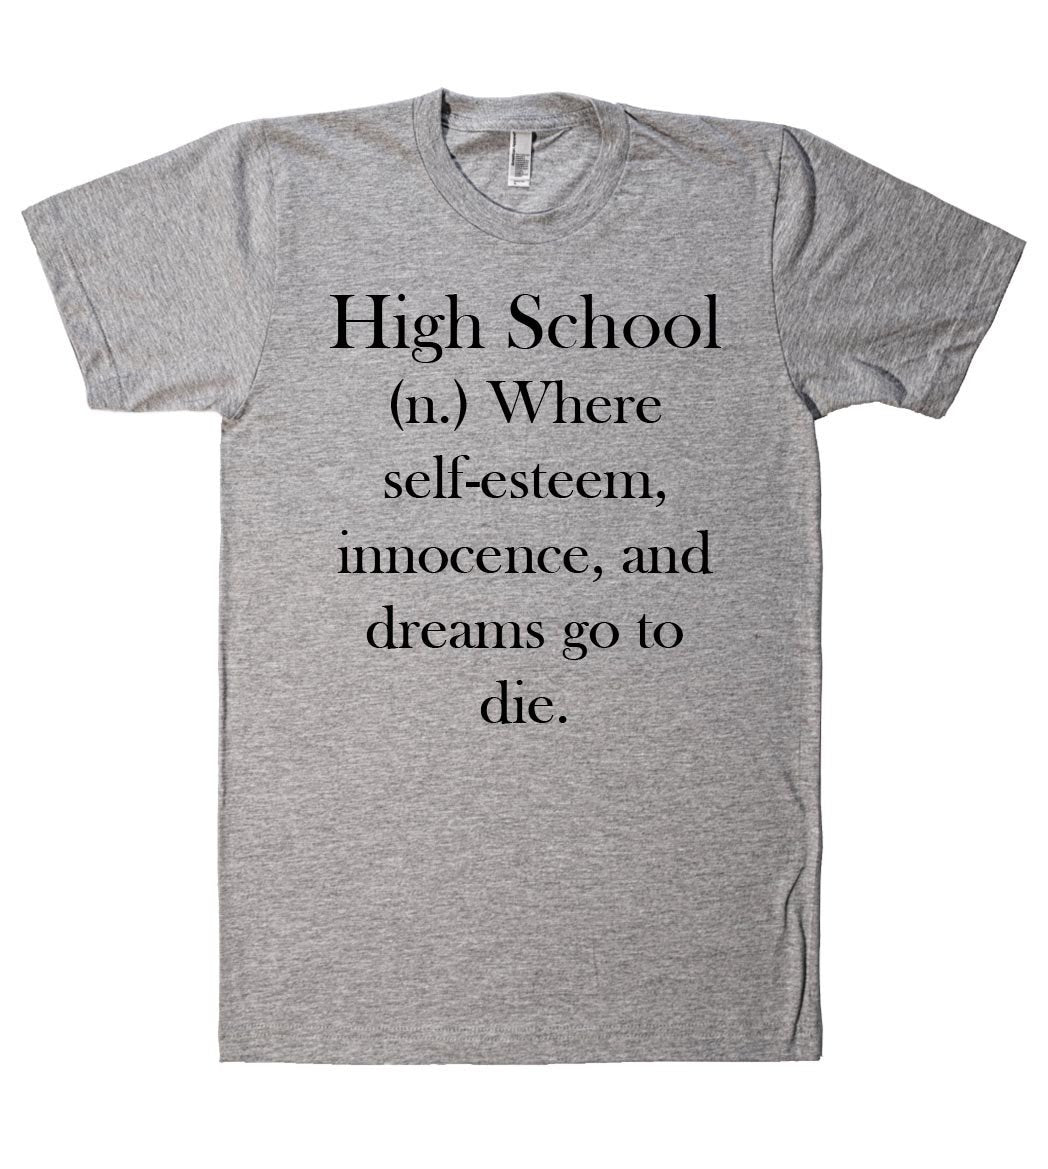 high school where self-esteem, innocence, and dreams go to die t-shirt - Shirtoopia